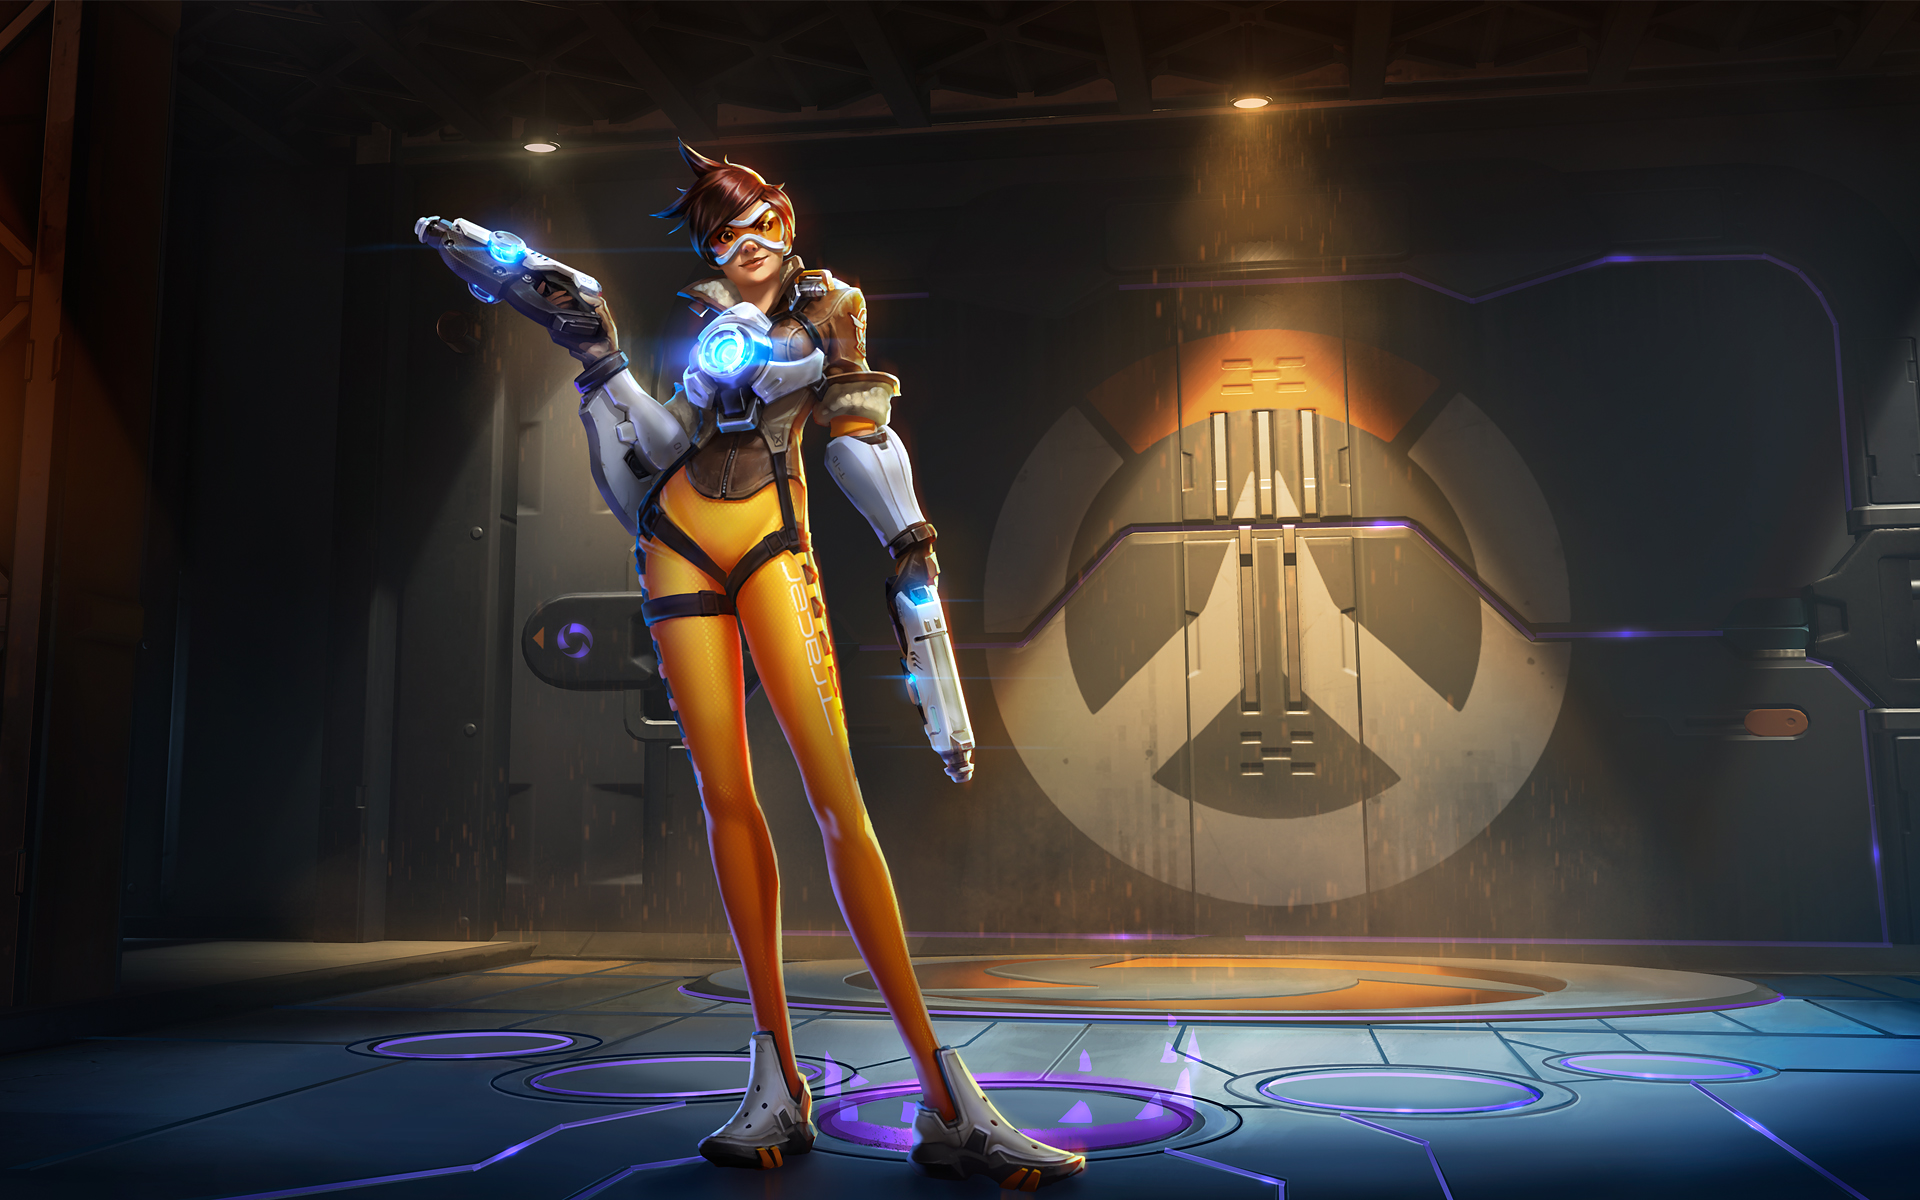 Tracer Overwatch Video Game